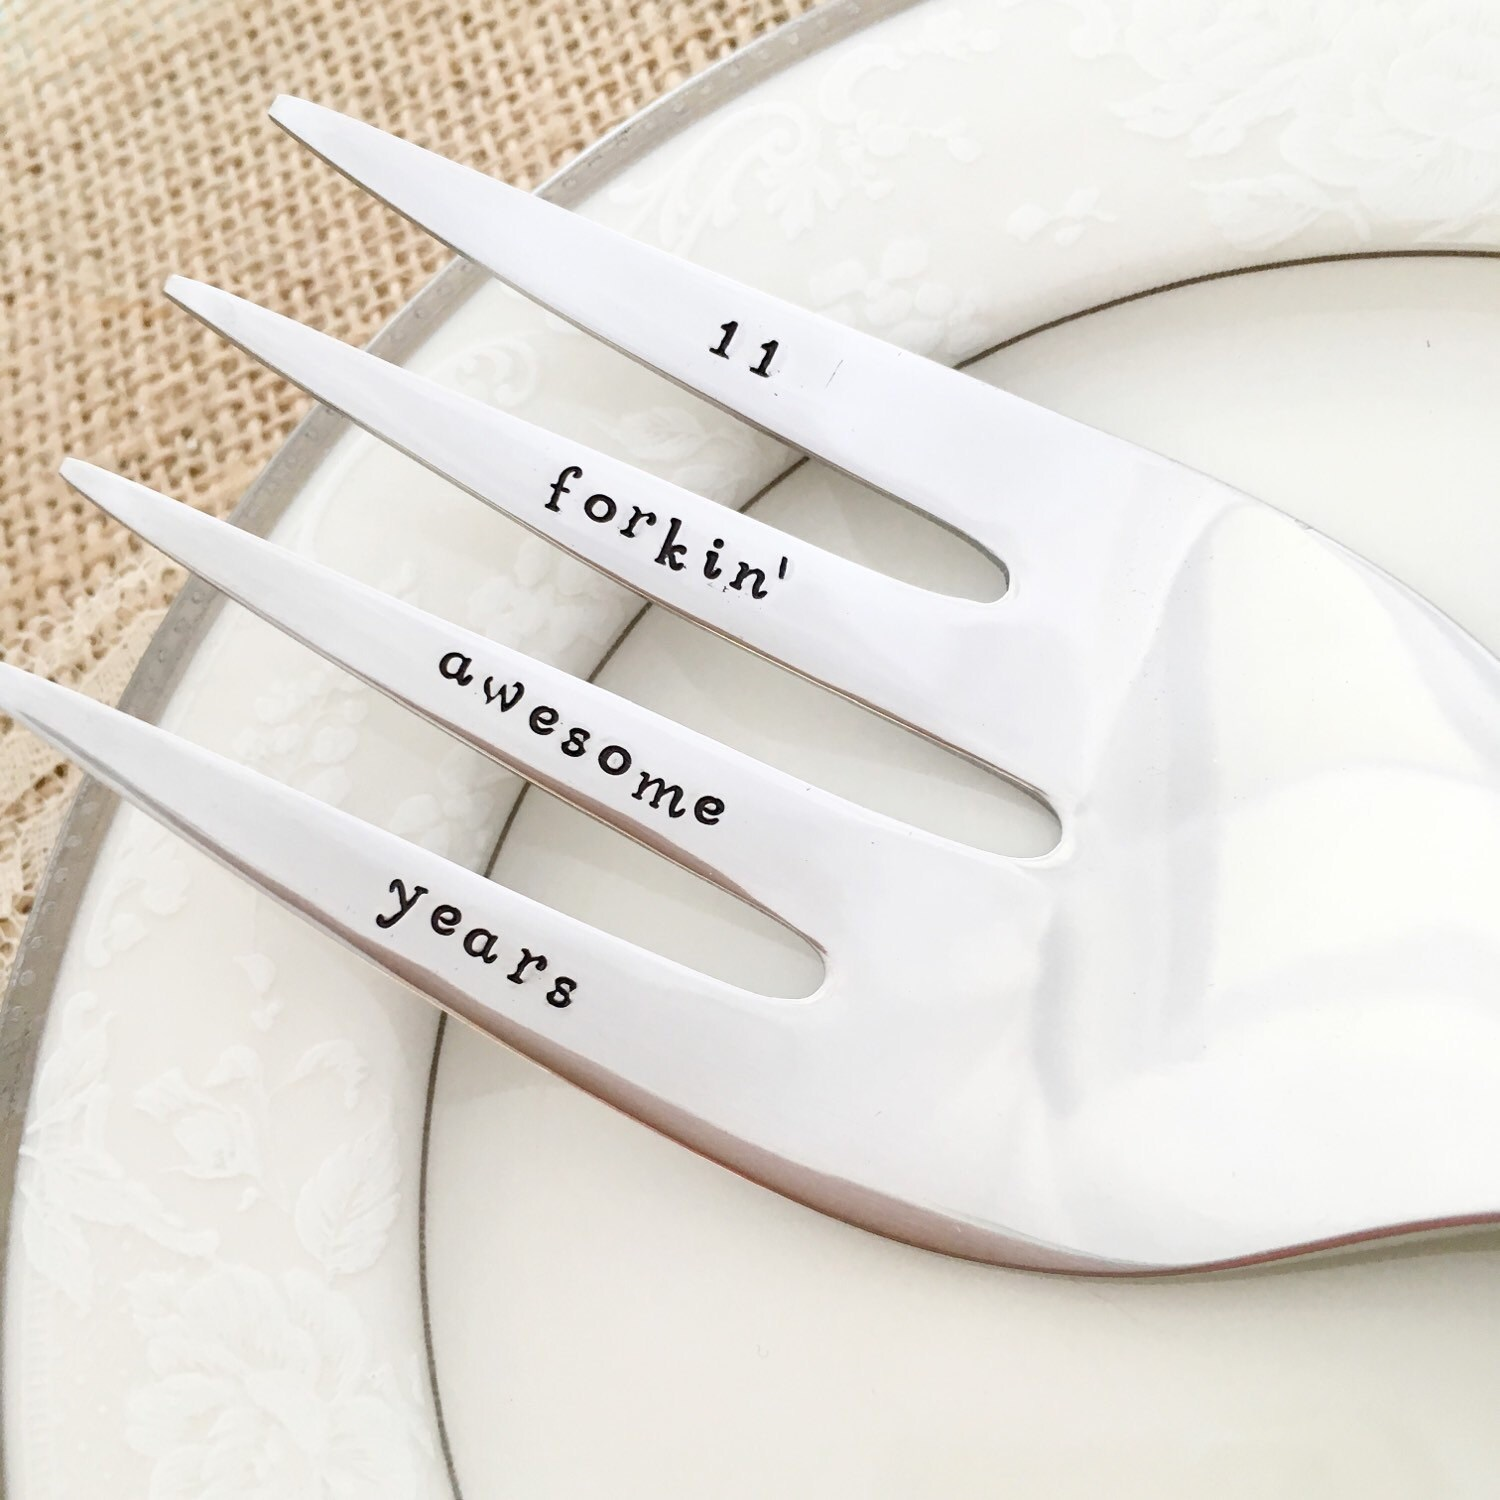 ... 11th anniversary gift 11 forkin awesome years traditional stainless steel serving fork gift hand stamped ...